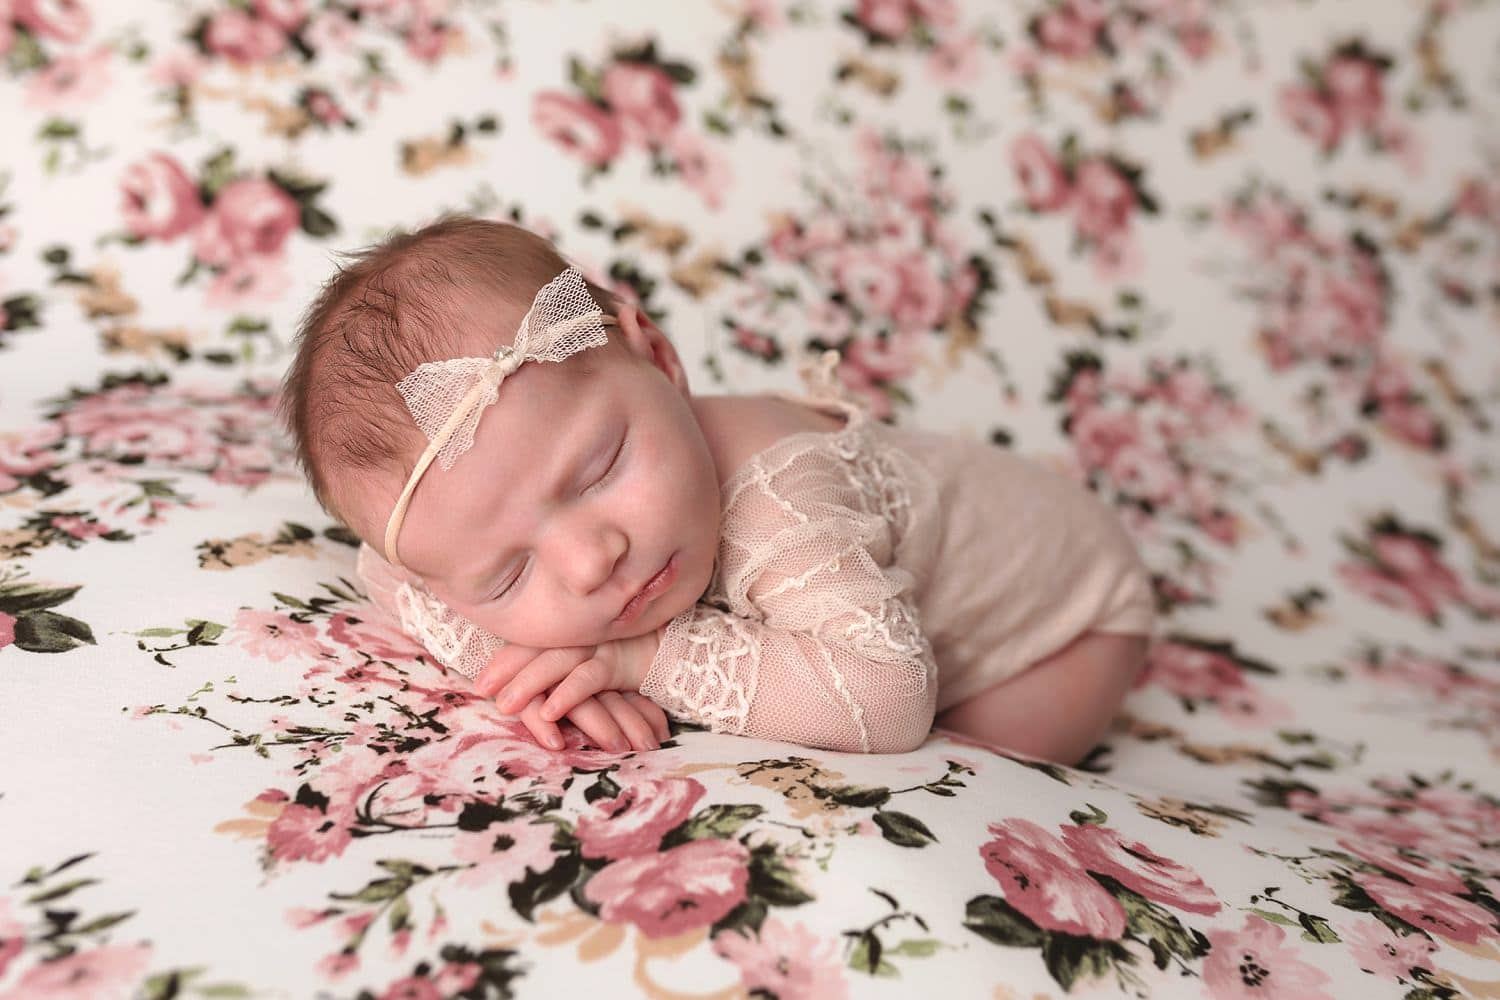 Artistic-studio-newborn-photography-Hartford-Connecticut-by-The-Flash-Lady-Photography